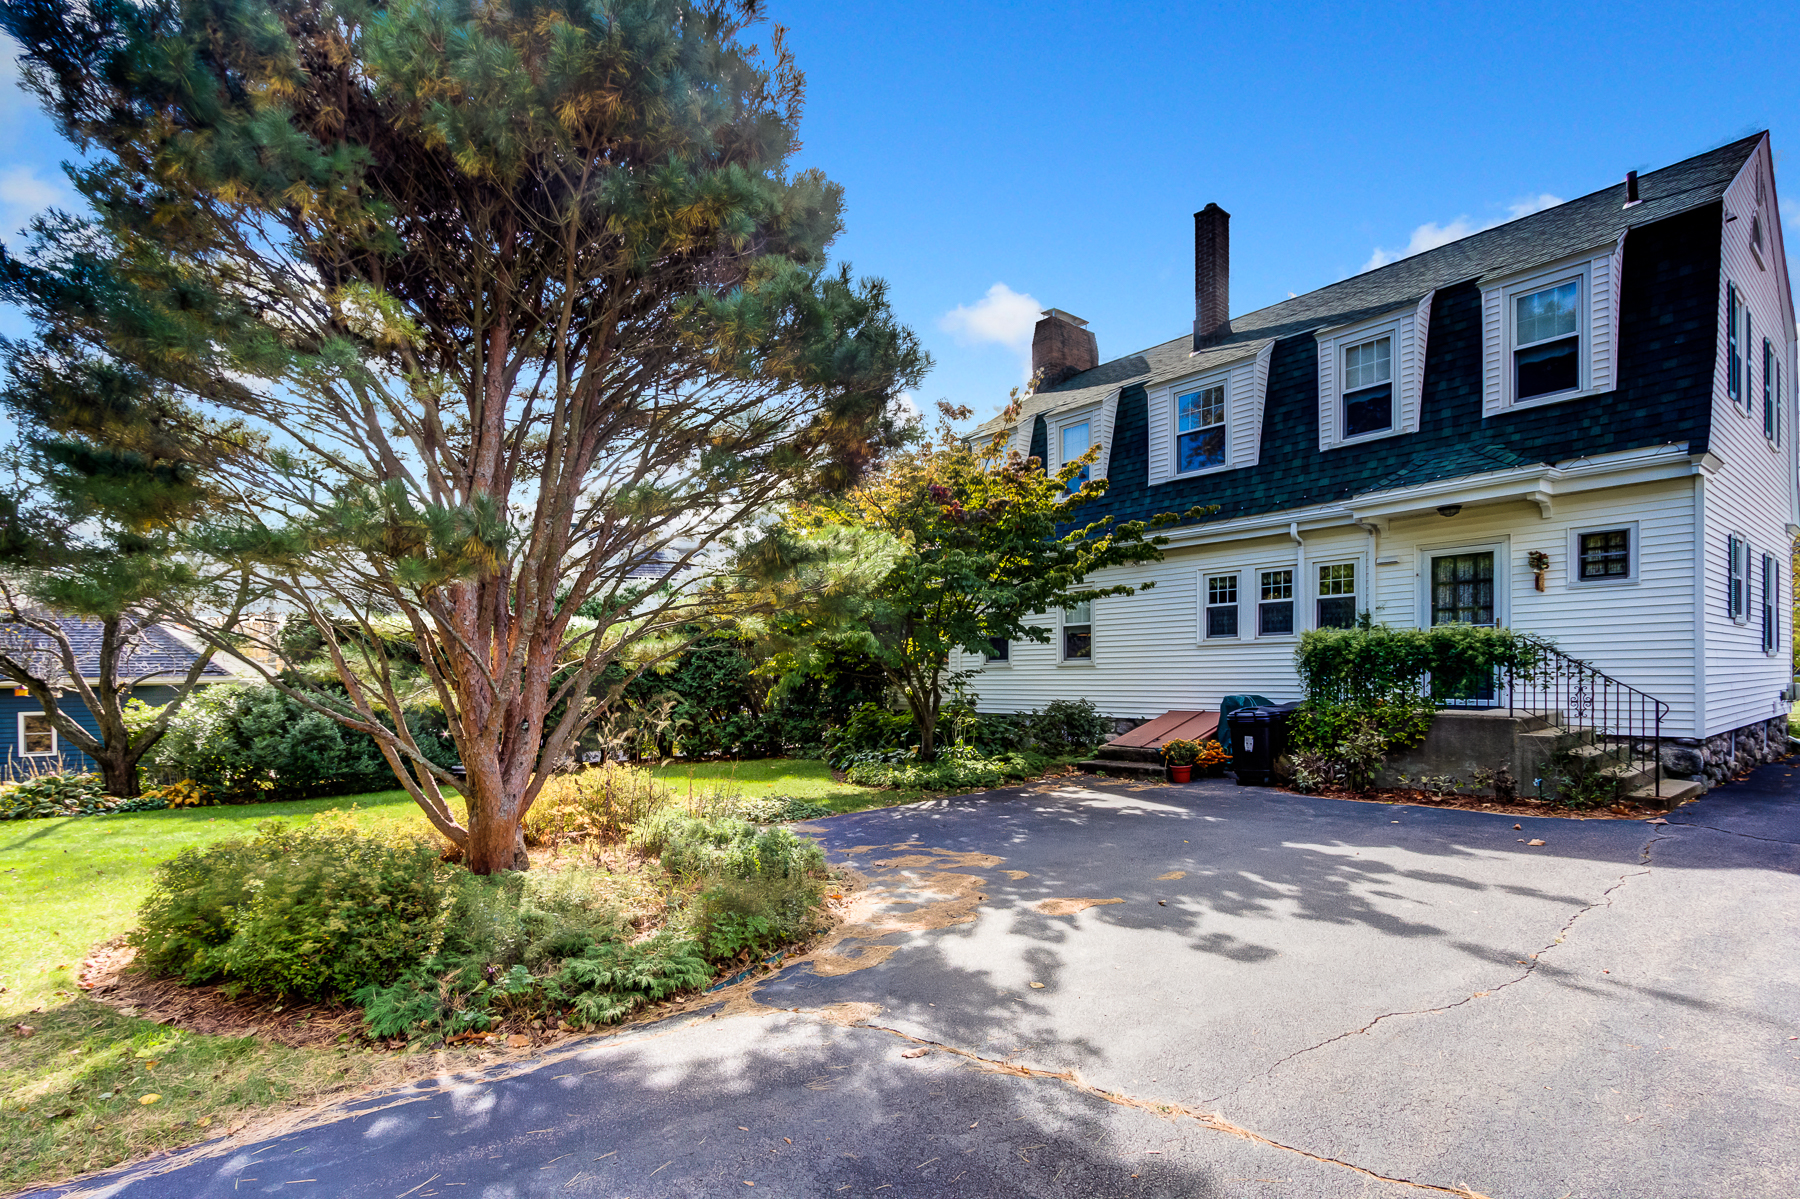 Additional photo for property listing at Charming Gambrel Home 73 Congress Street Milford, Massachusetts 01757 United States